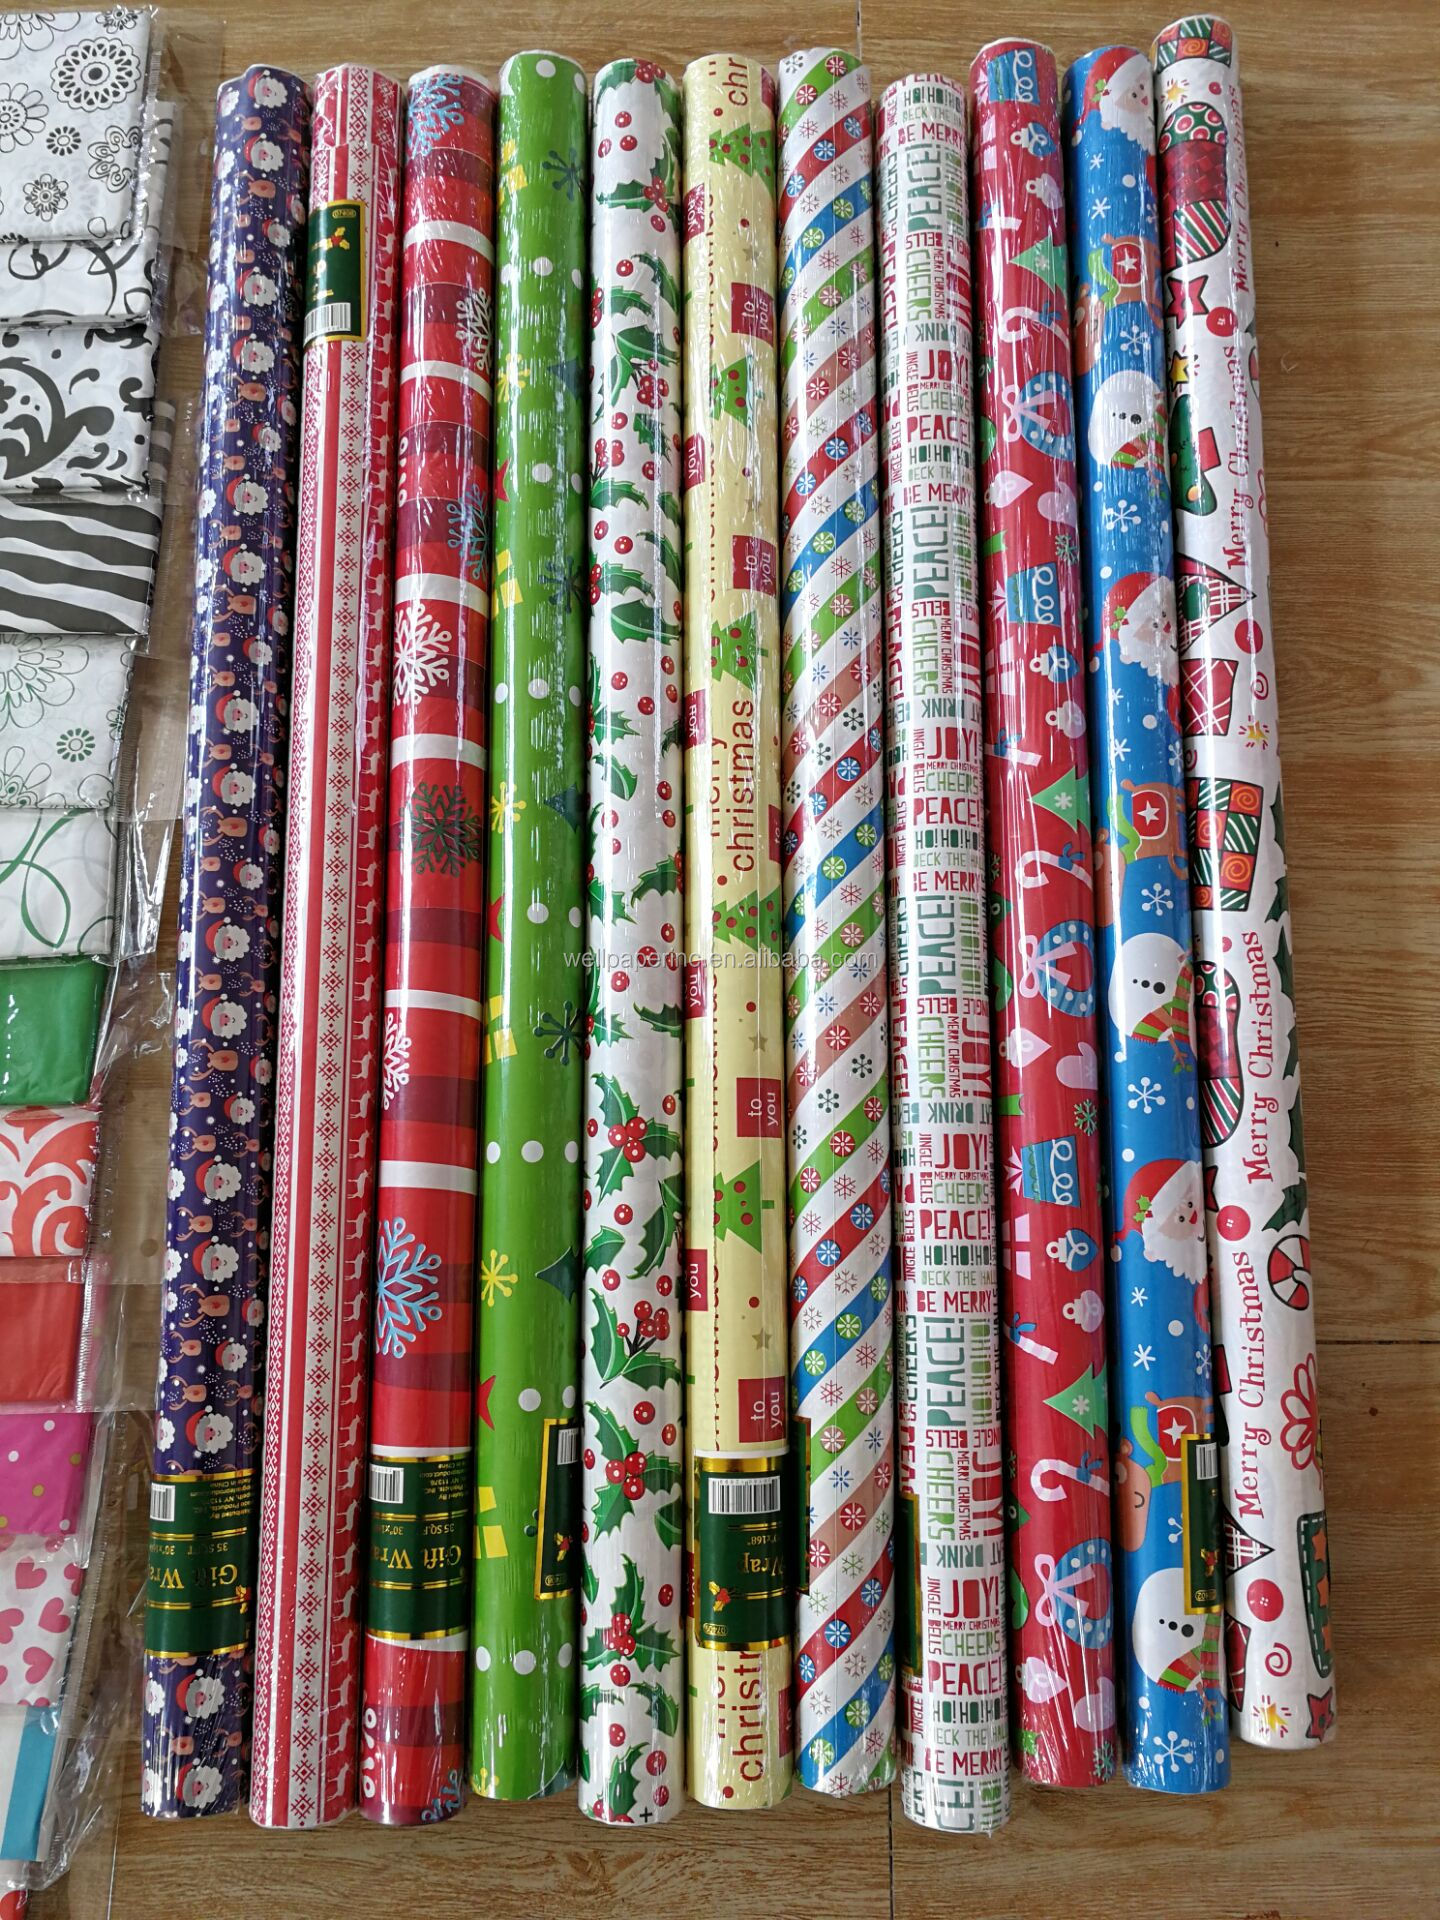 Gift Wrapping Paper & Multi Color Printed Wrapping Paper for Birthdays, Valentines, Christmas